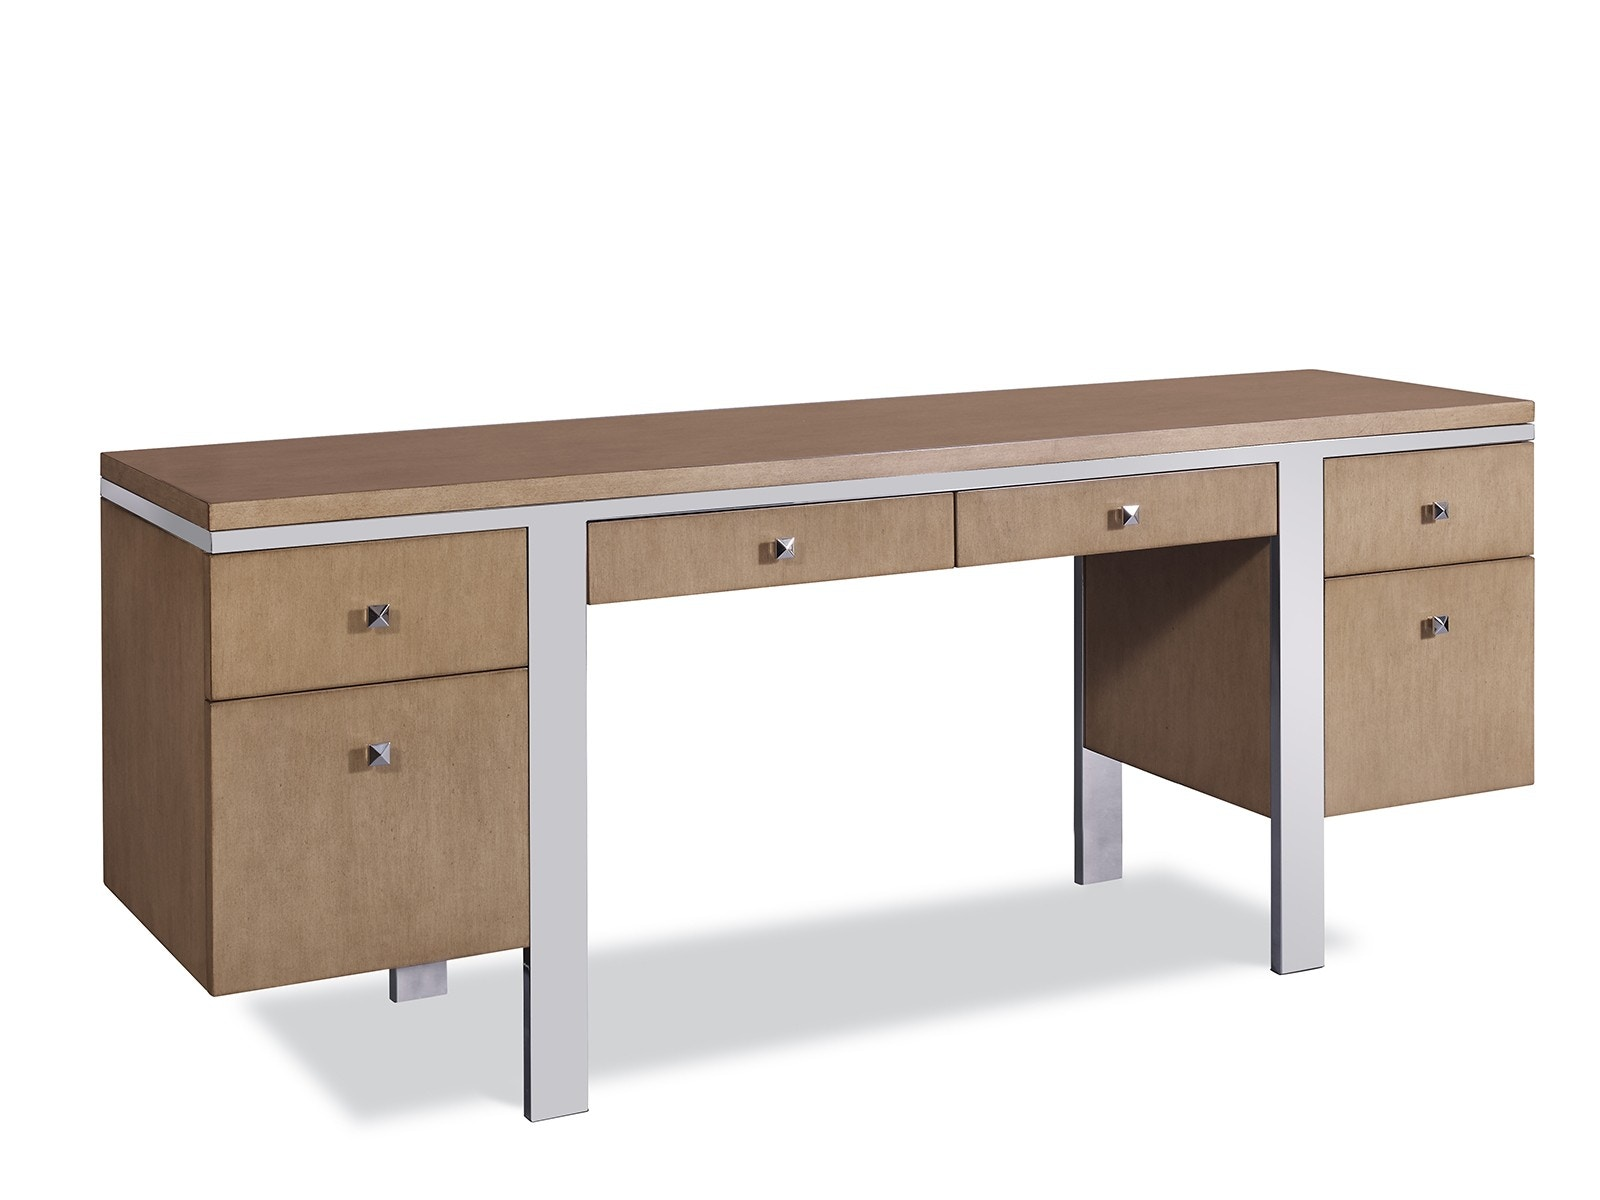 swaim desks - noel furniture - houston, tx